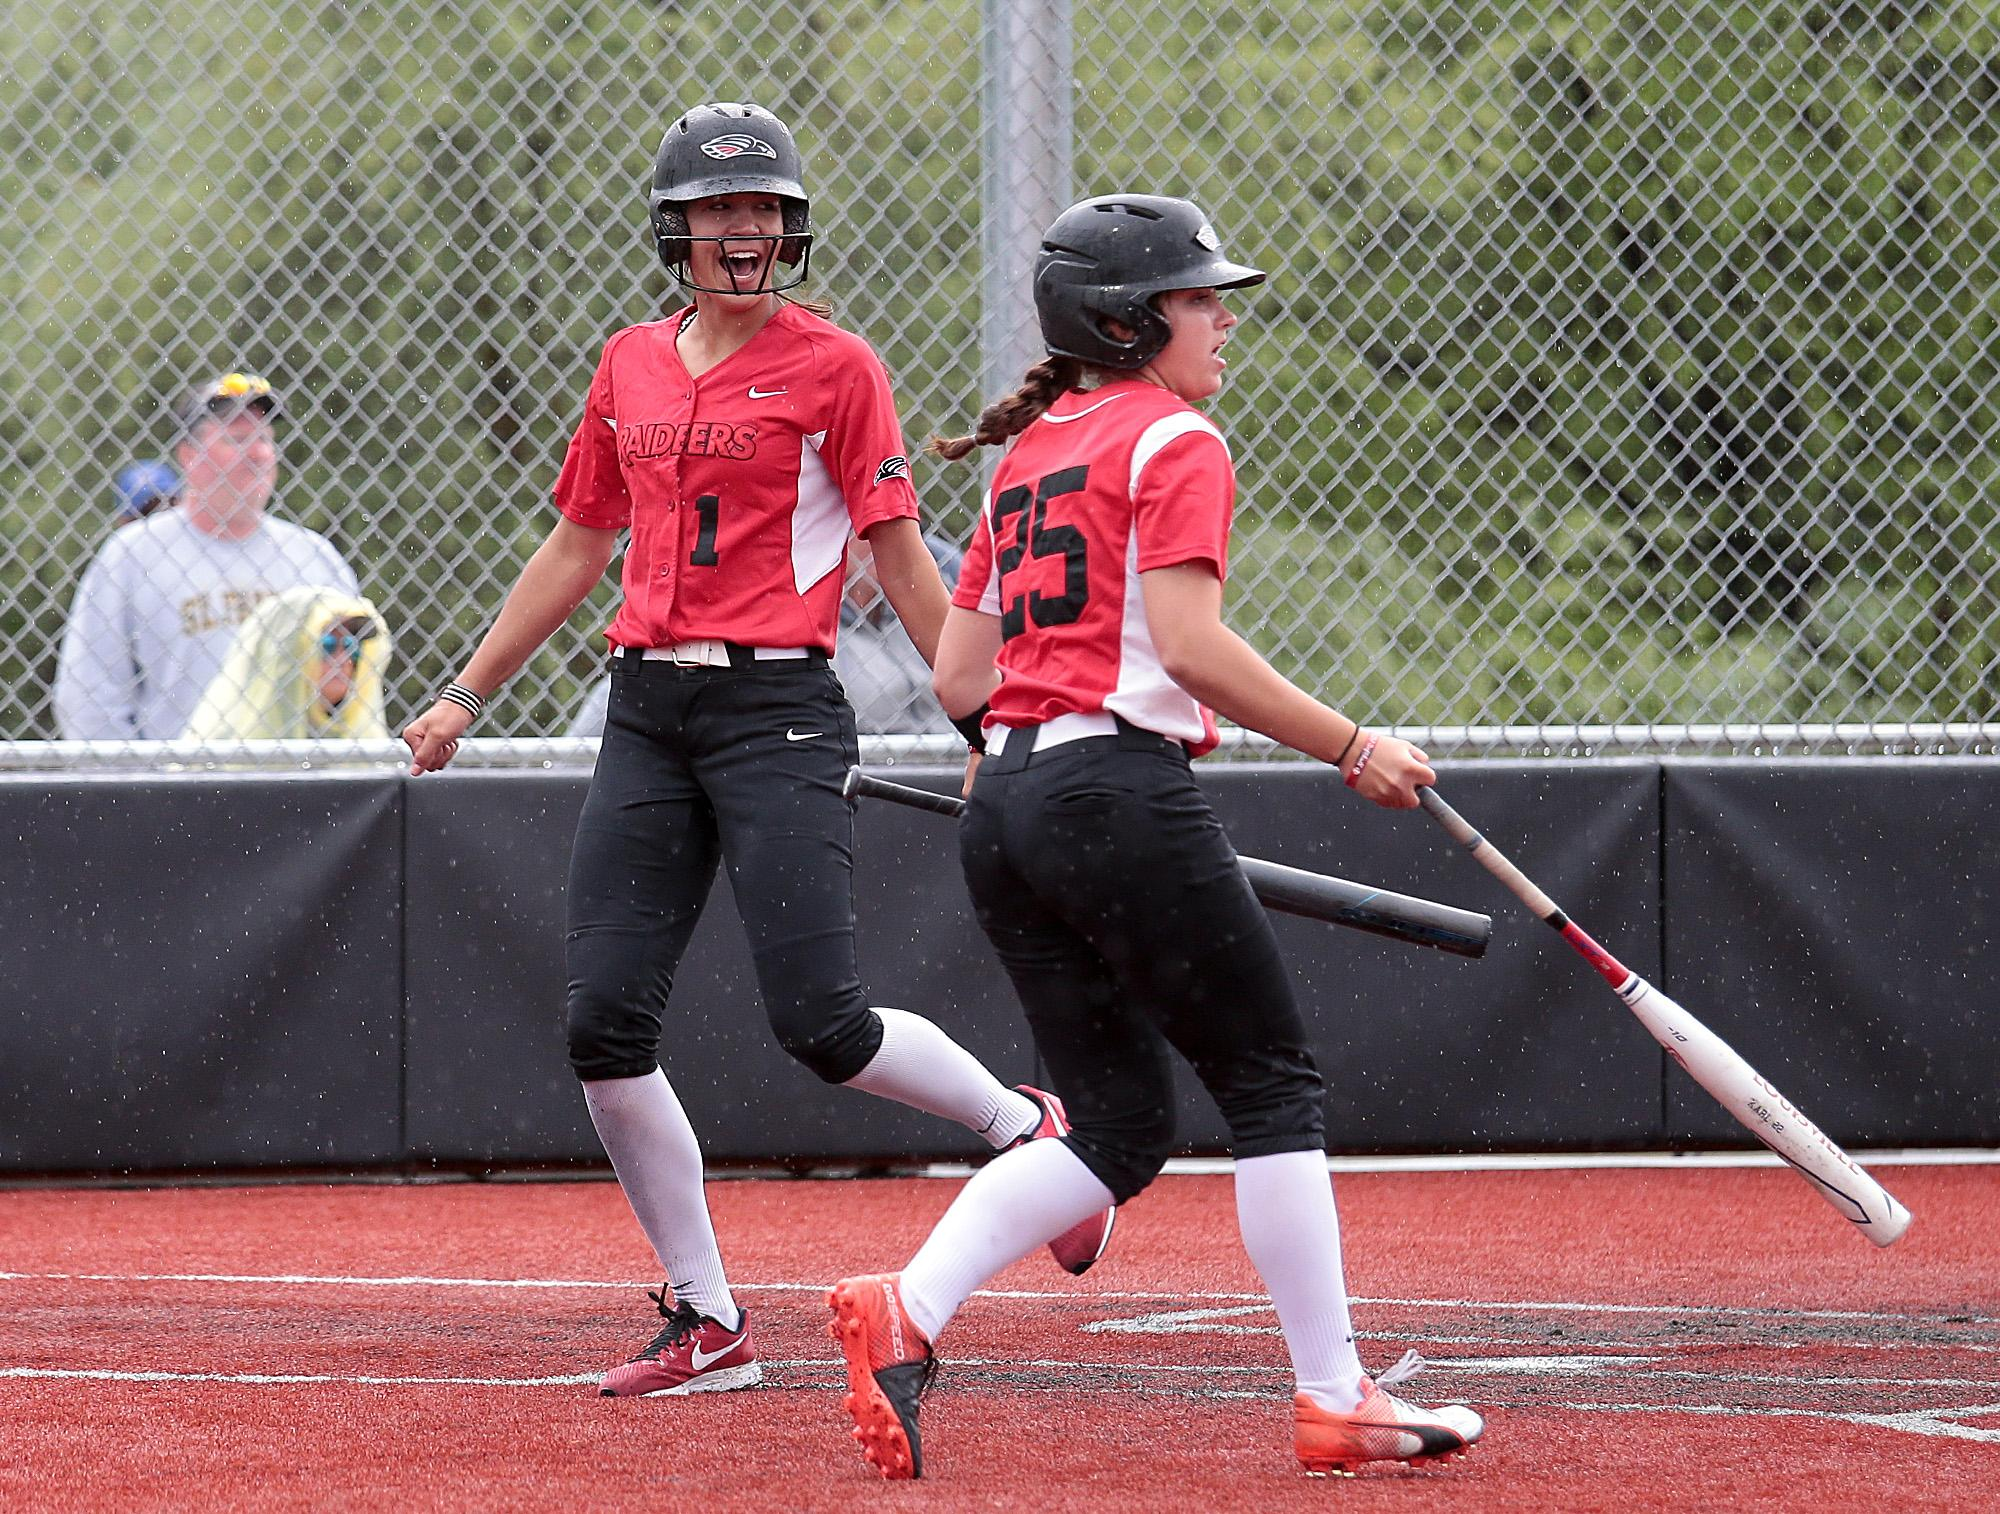 Southern Oregon University freshman Tayler Walker reacts after scoring against St. Francis, as teammate Hannah Wessel looks on, at US Cellular Community Park on Wednesday.[PHOTO BY:  LARRY STAUTH JR]